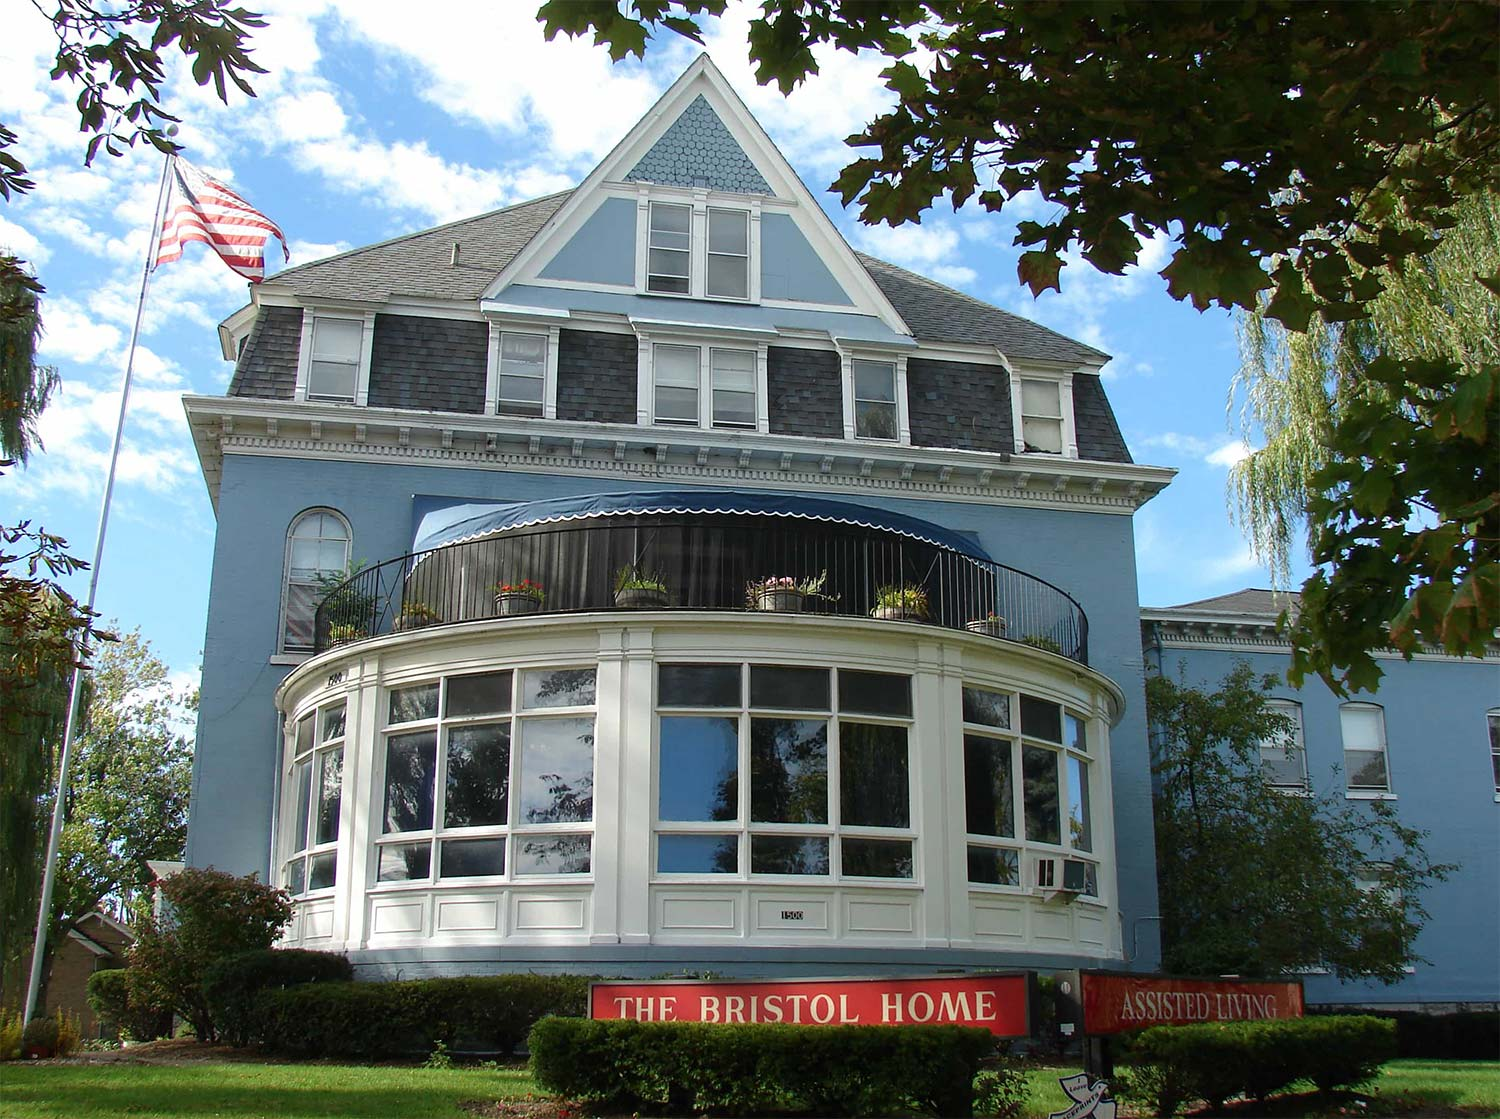 Photo of Bristol Home Assisted Living Buffalo NY - exterior of building